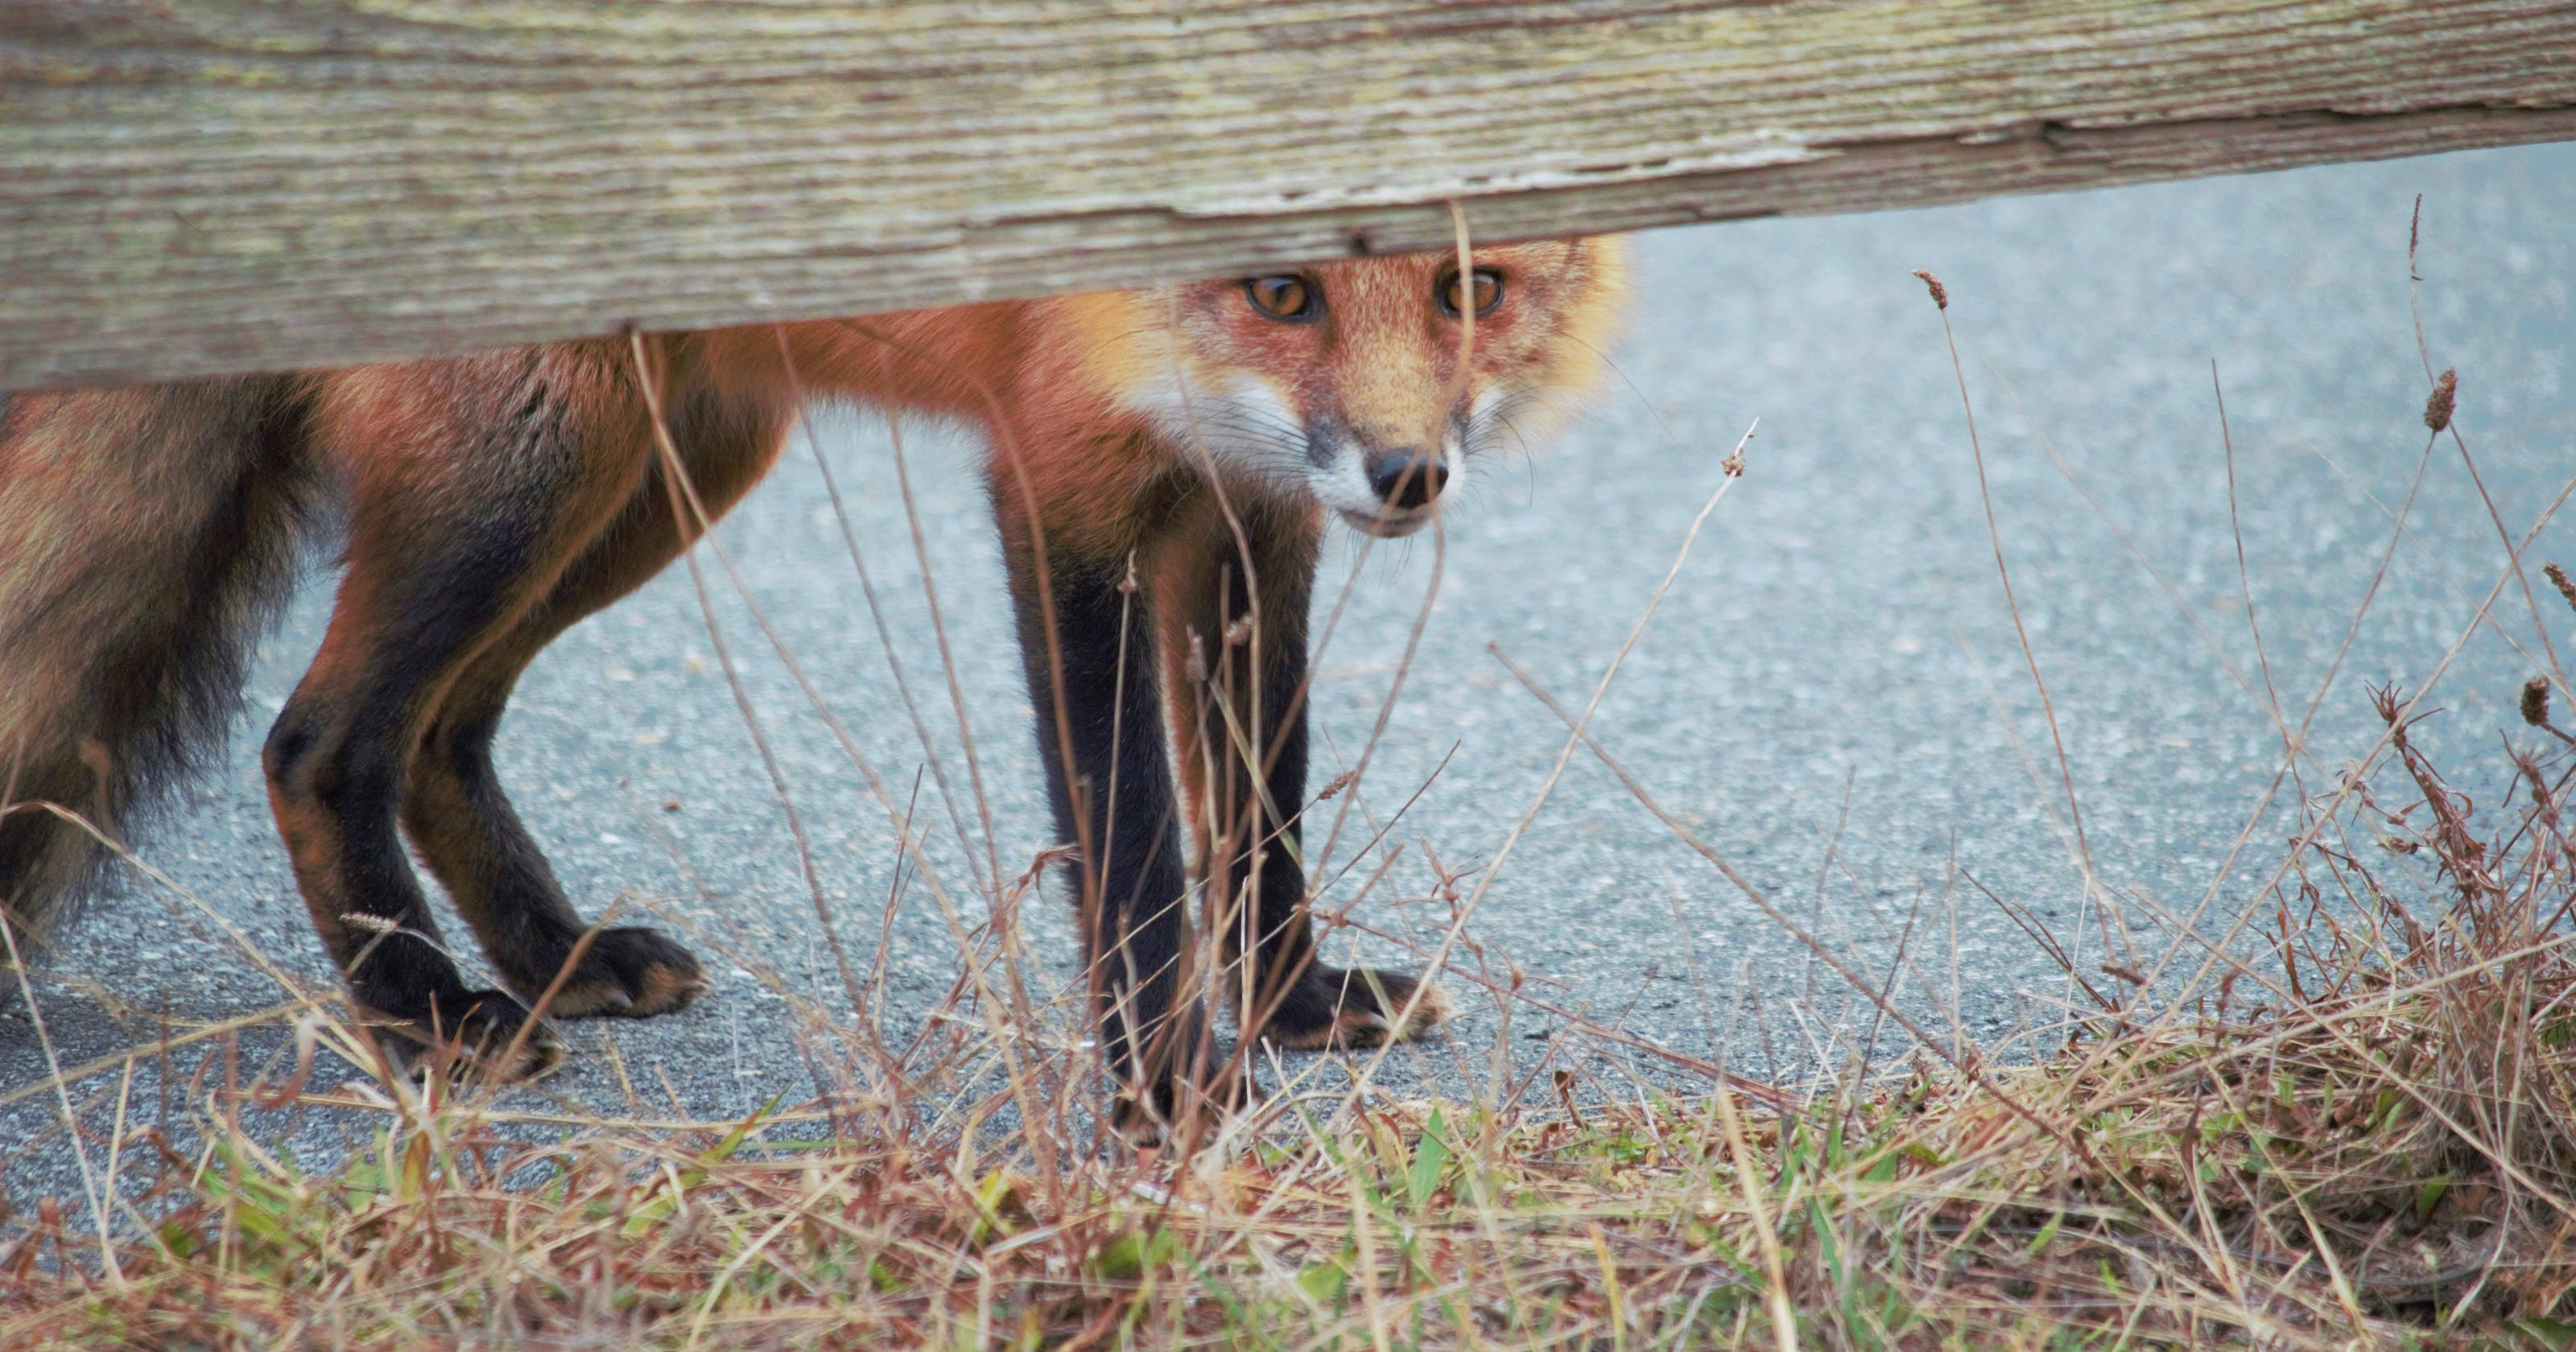 Foxes, possums and raccoons, oh my!